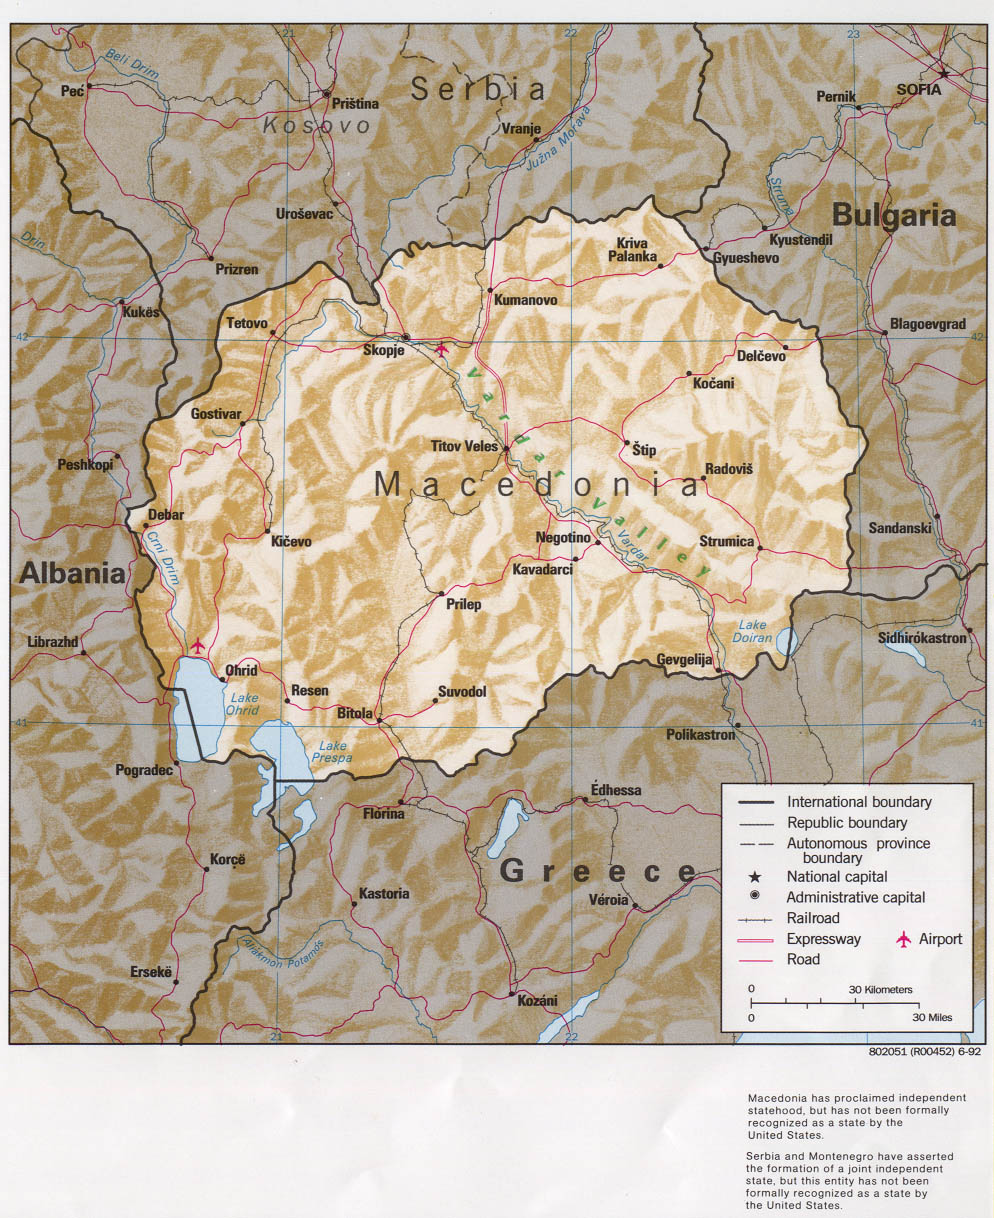 Maps of macedonia detailed map of macedonia in english tourist political map of macedonia with relief roads cities and airports publicscrutiny Choice Image